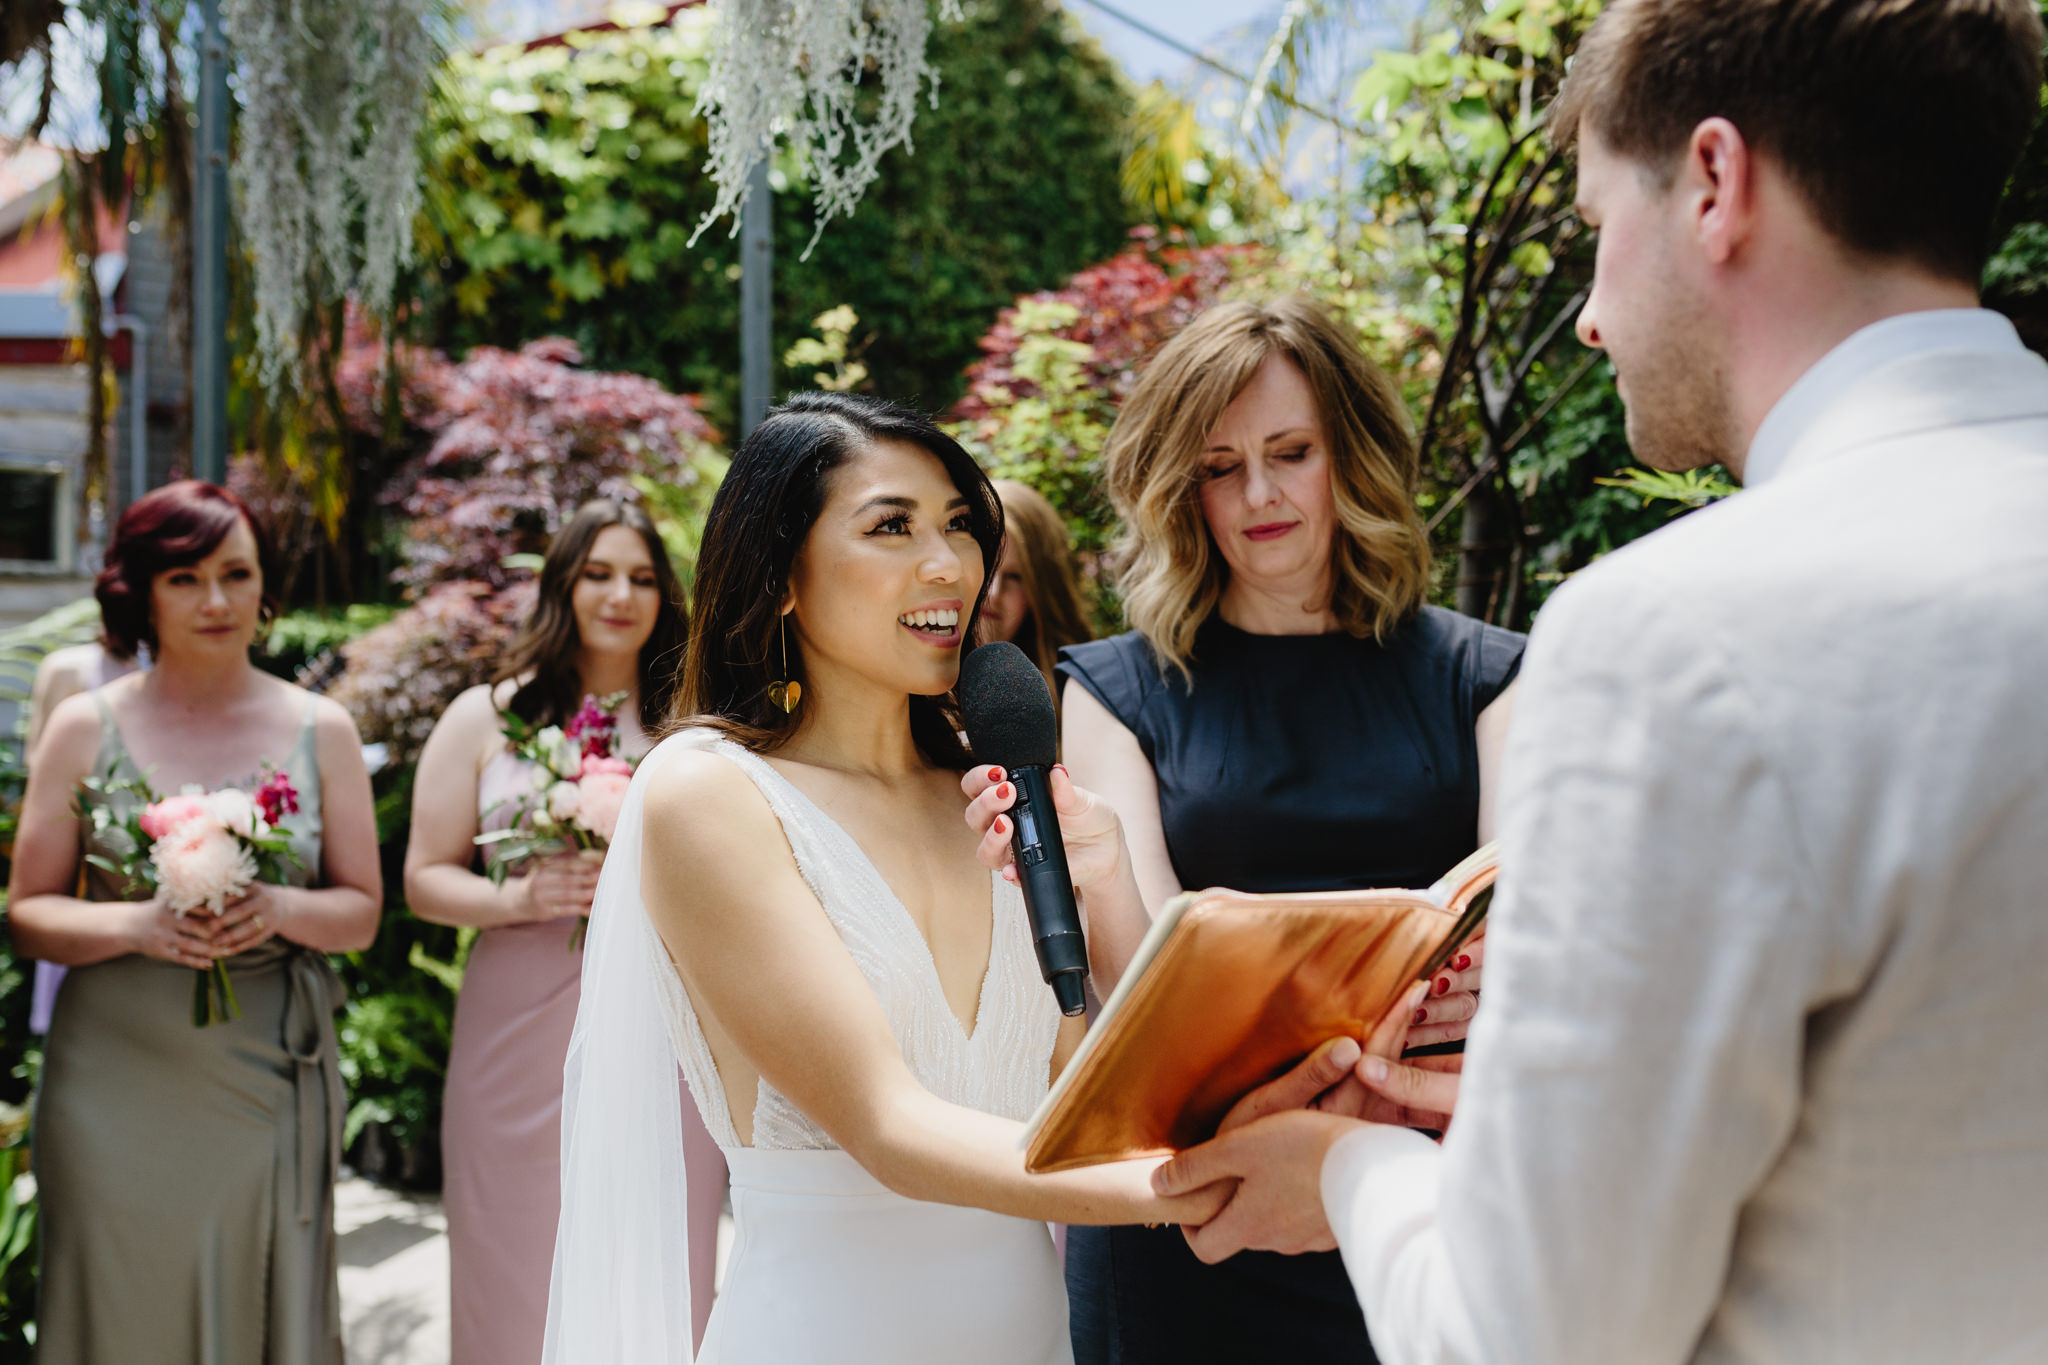 Personal wedding vows are important for Melbourne weddings